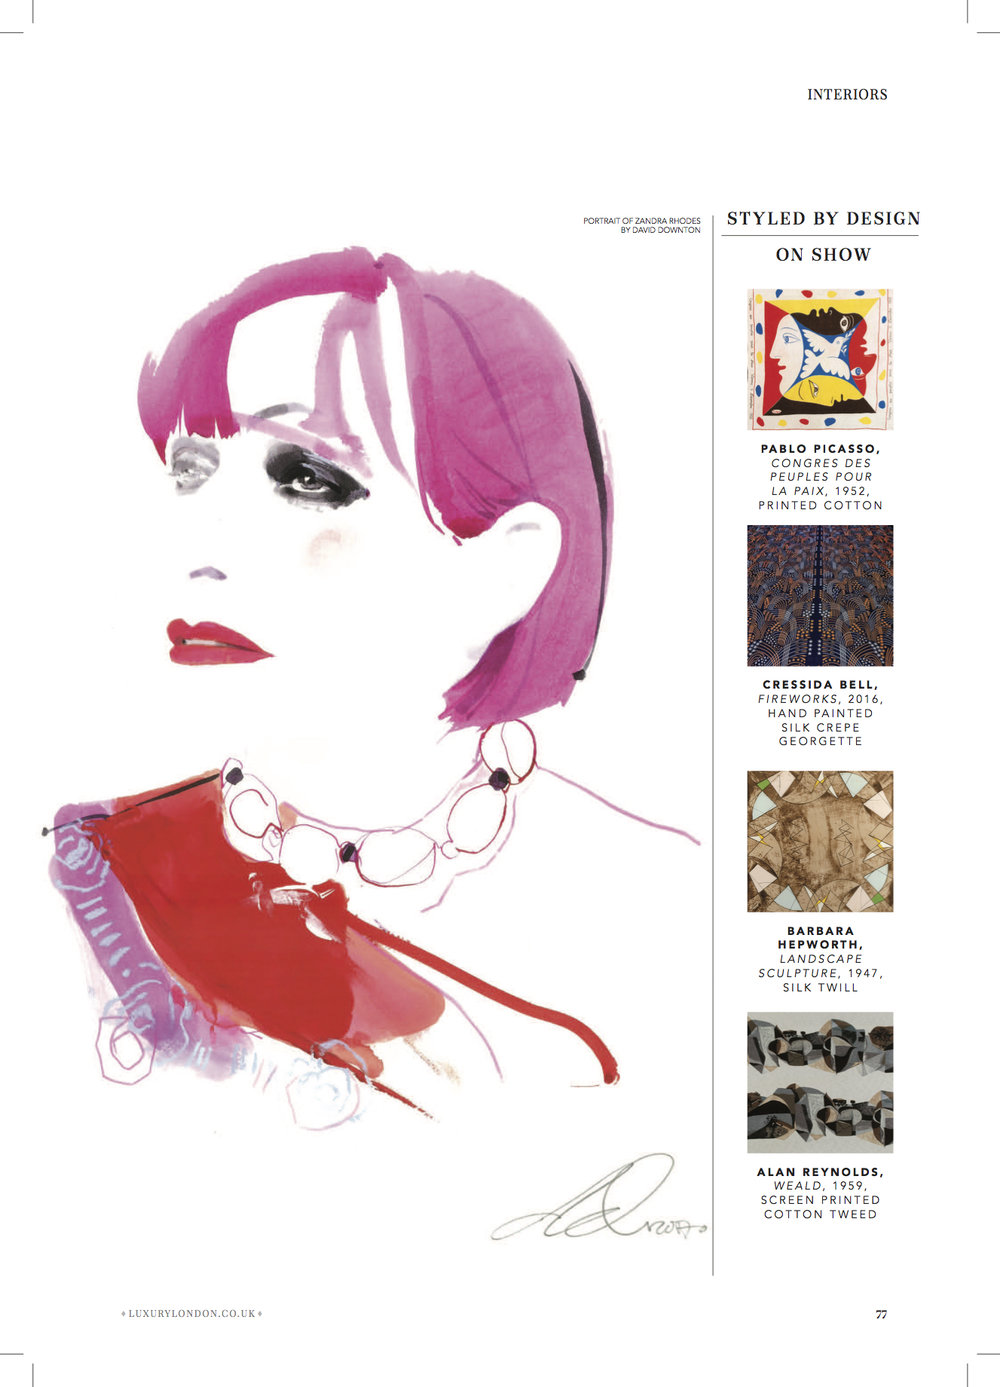 077 MAYF OCT 17 INTERIORS - FEATURE - ZANDRA RHODES.jpg